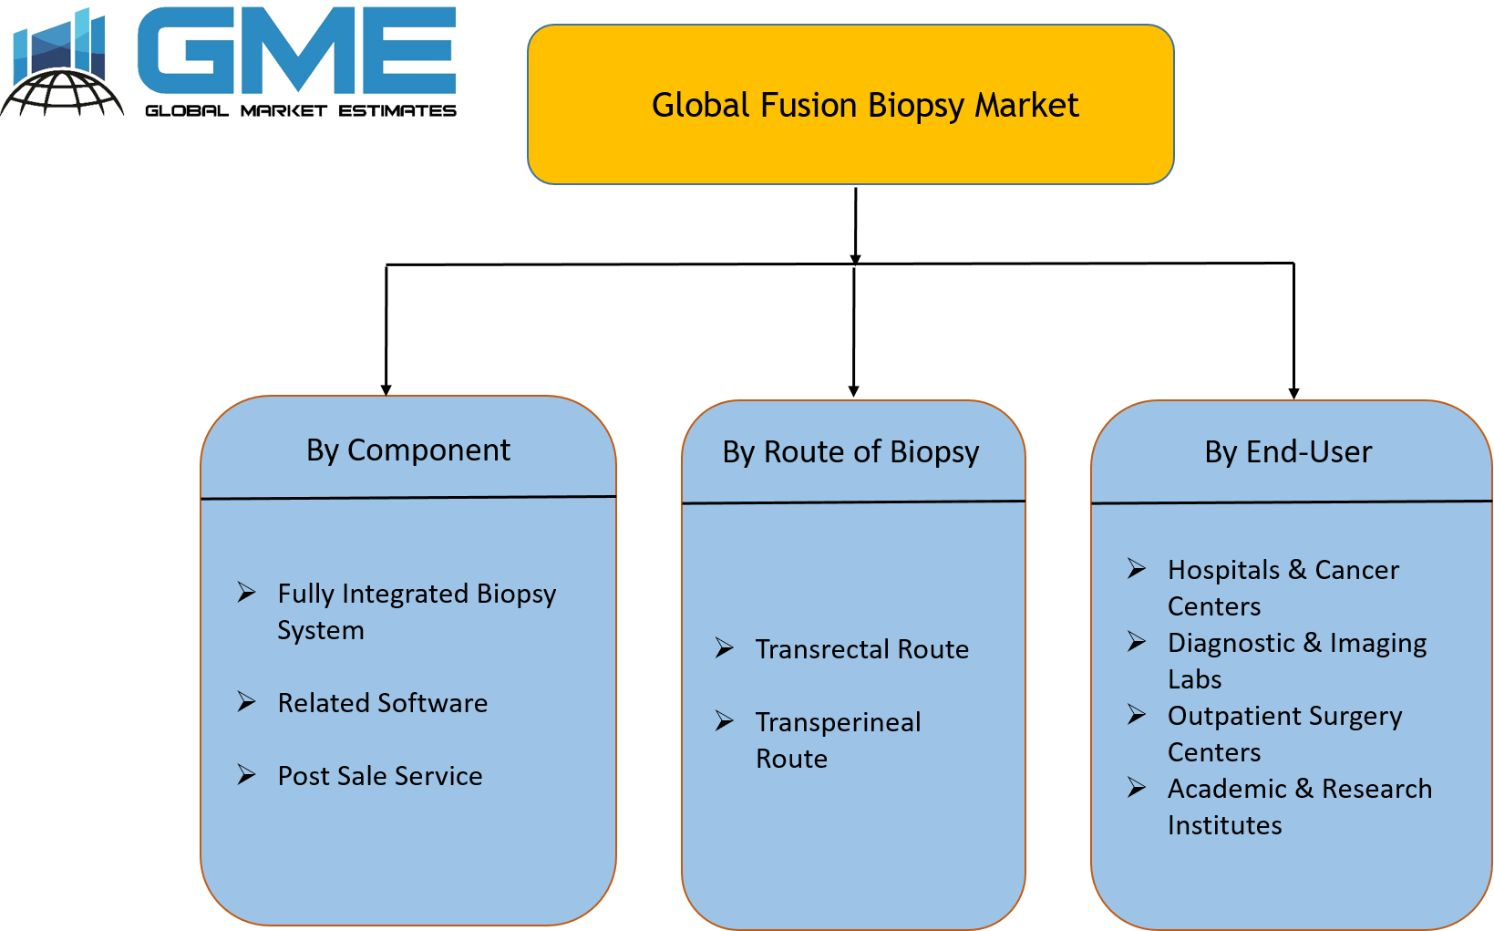 Global Fusion Biopsy Market Segmentation